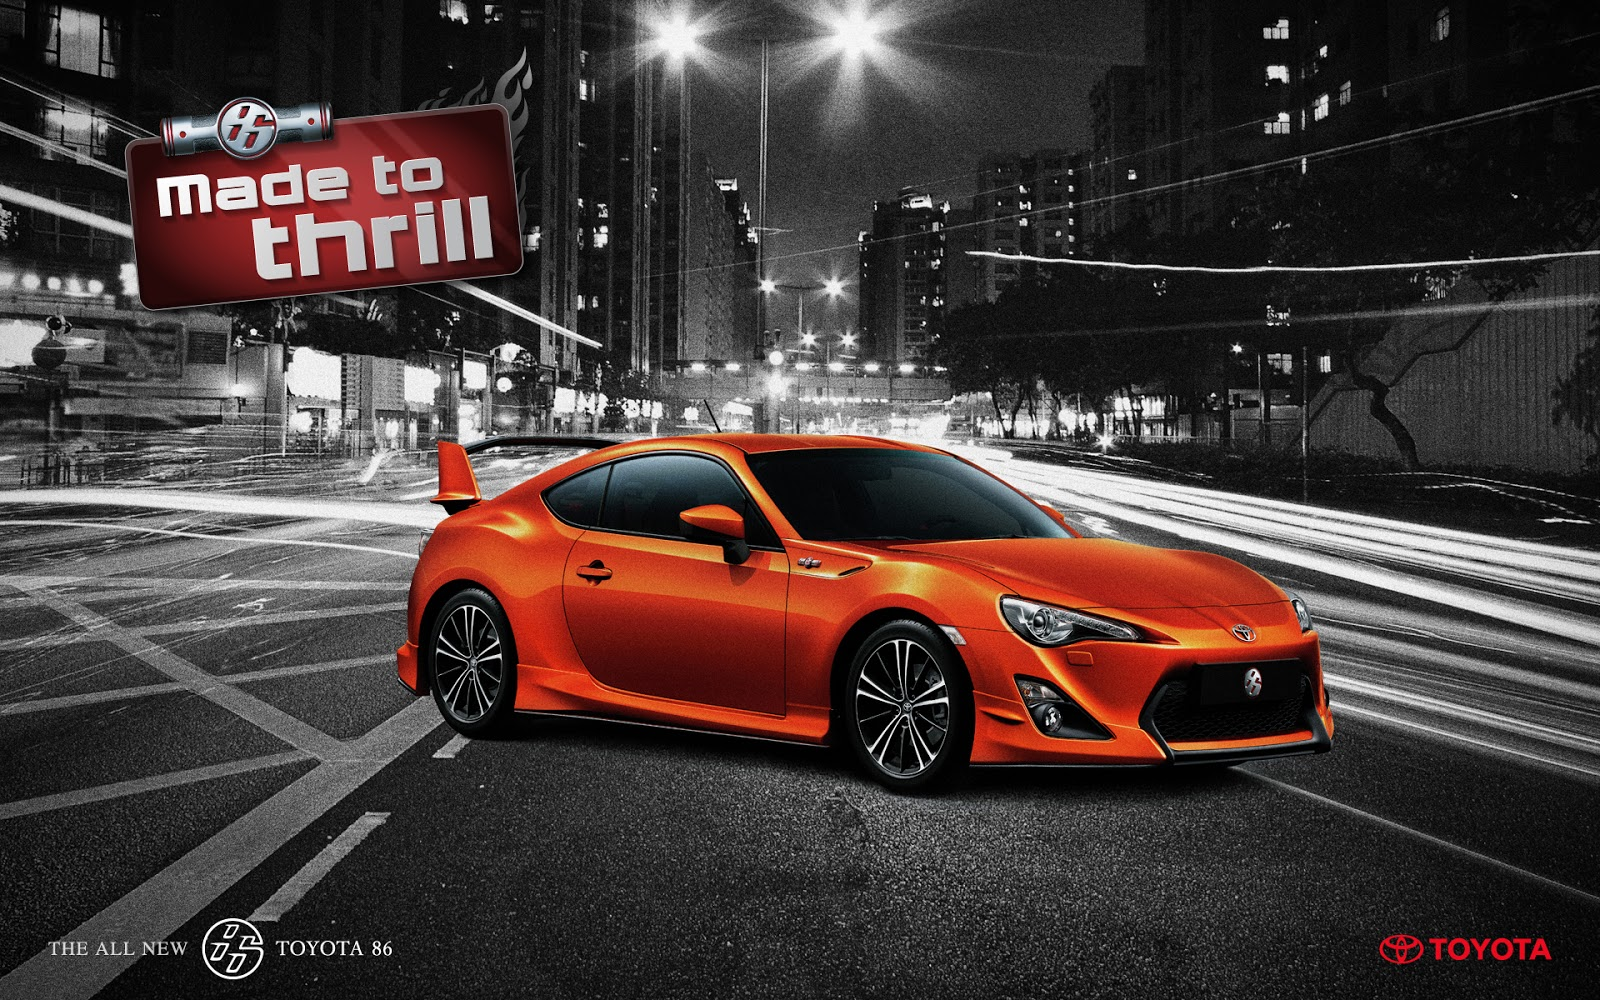 http://2.bp.blogspot.com/-DgNDL7n4H6g/UIfjZNNycyI/AAAAAAAAFco/fJAyZj9y1Vs/s1600/Toyota-86-Subaru-BRZ-Scion+FR-S-sports+car-coupe-exterior-view-RED-front-side-wallpaper.jpg